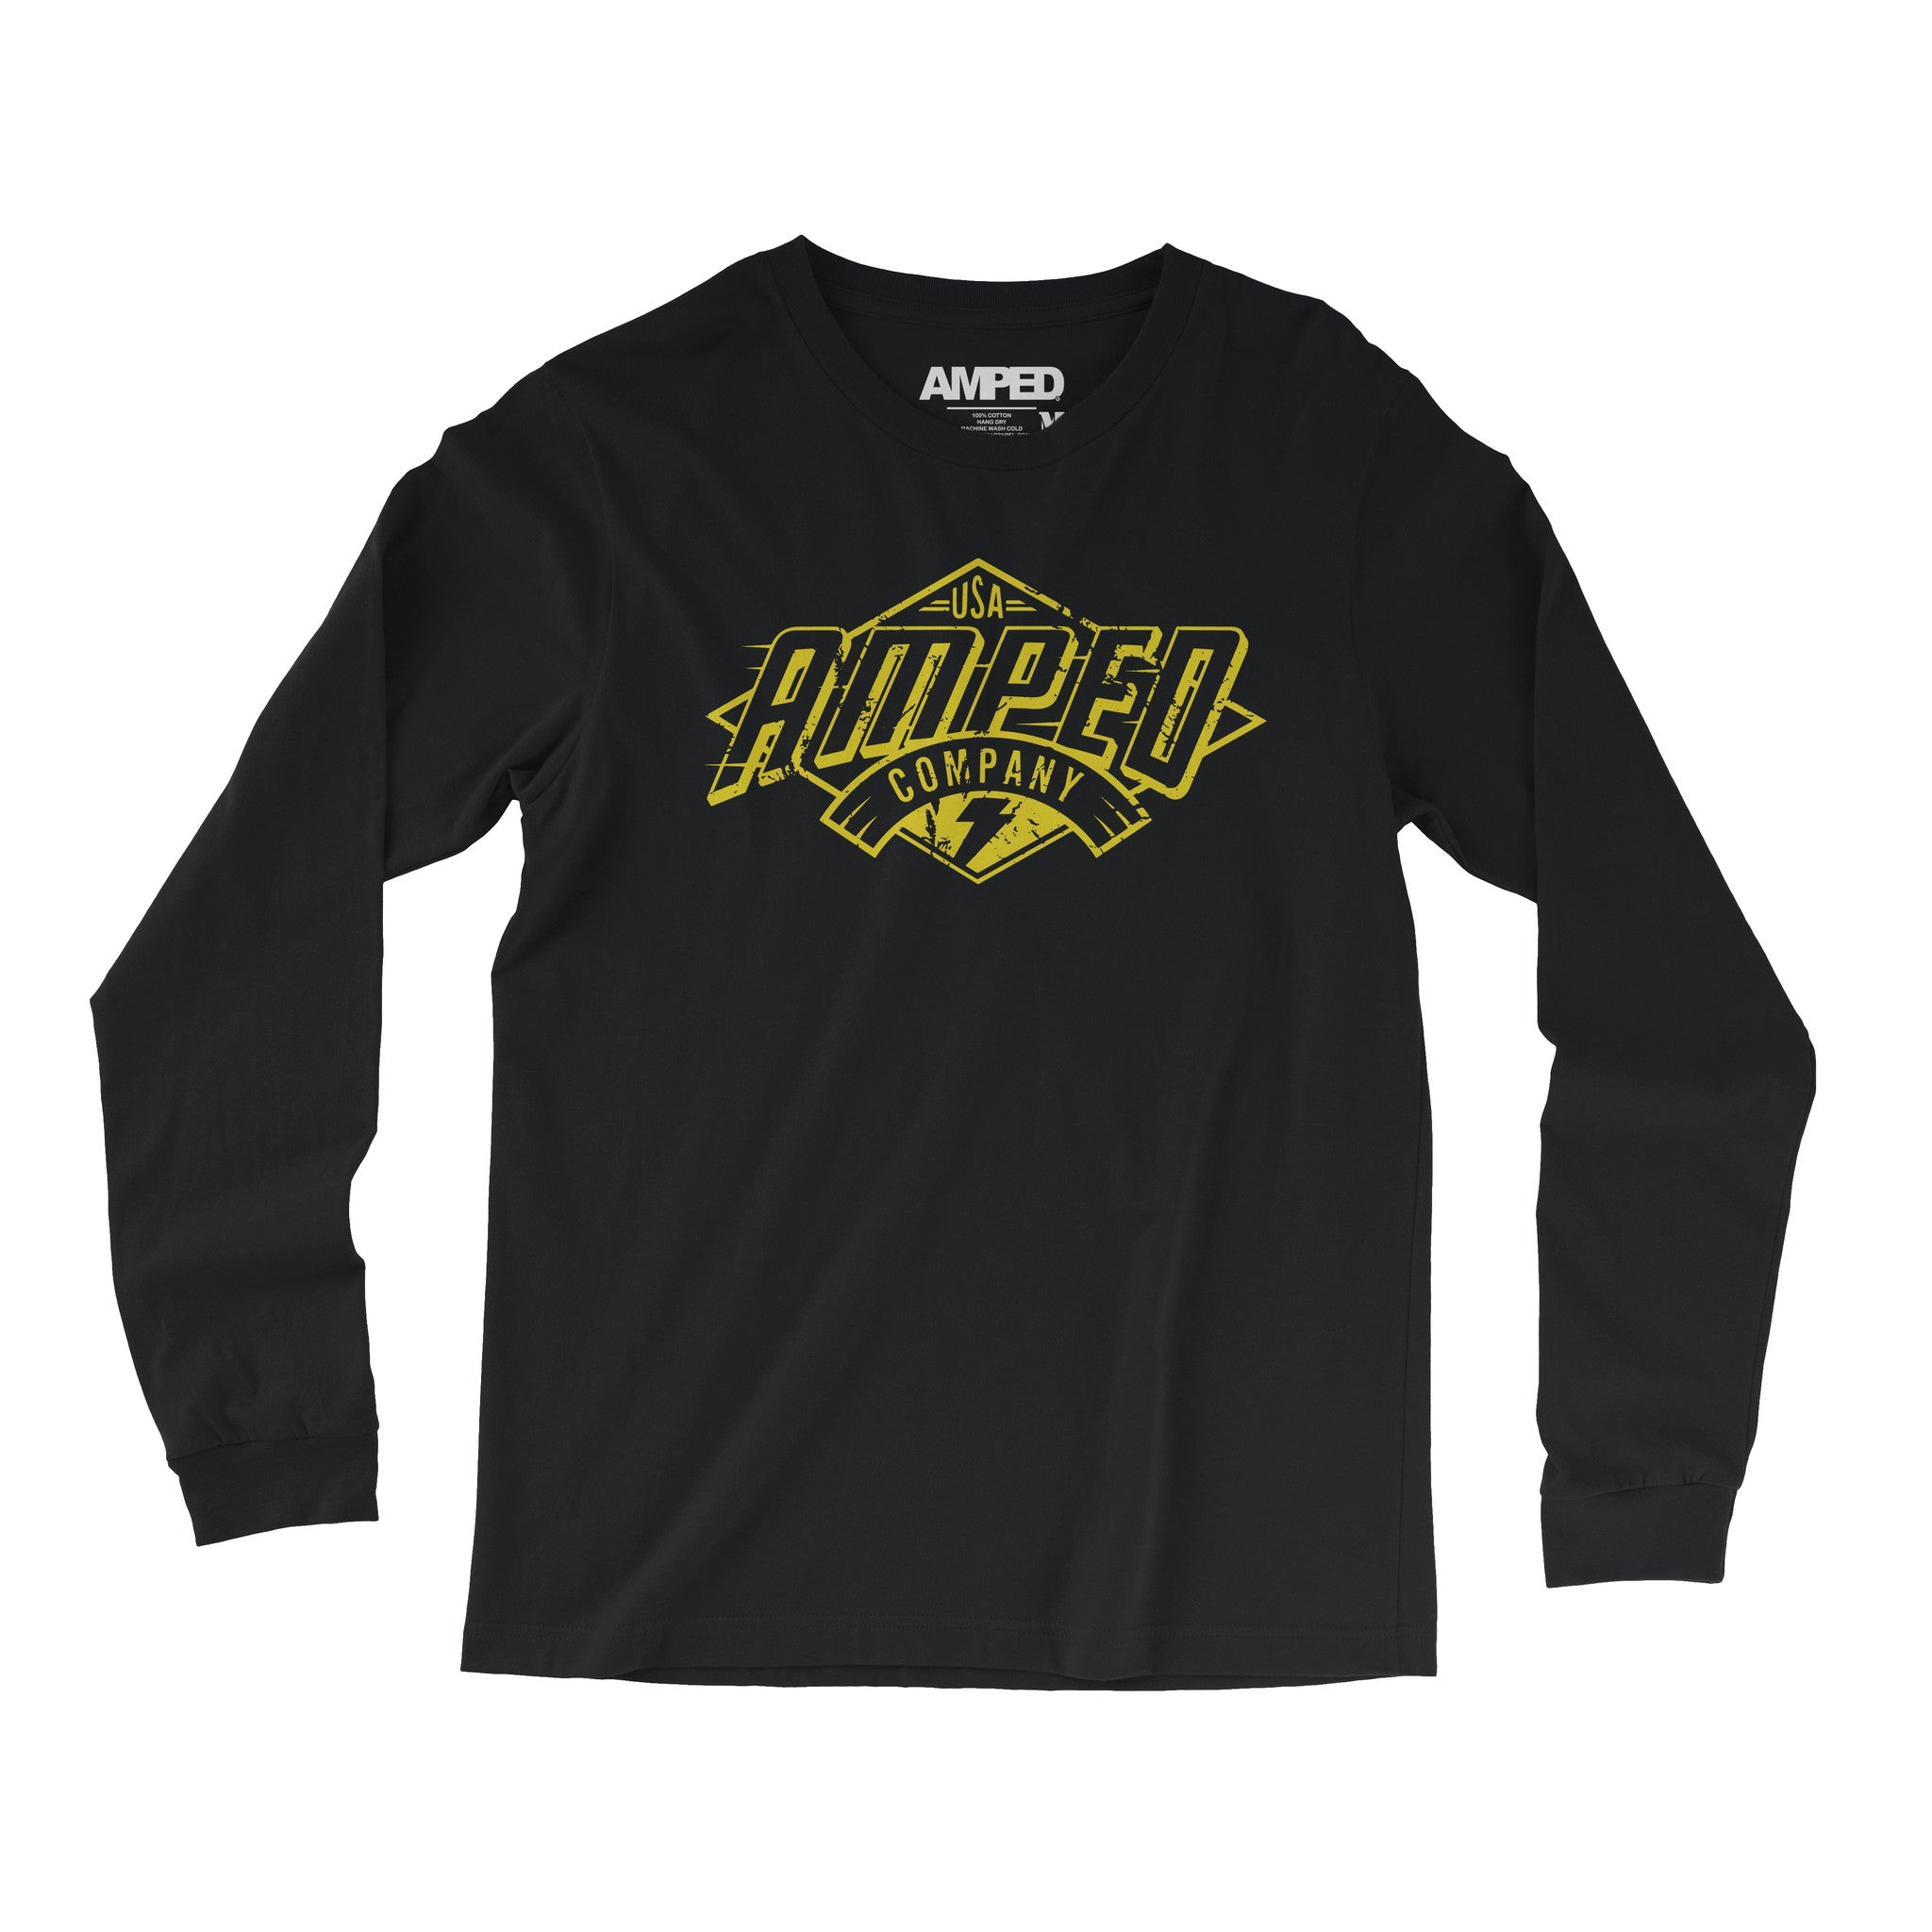 Standard Long Sleeve / Black